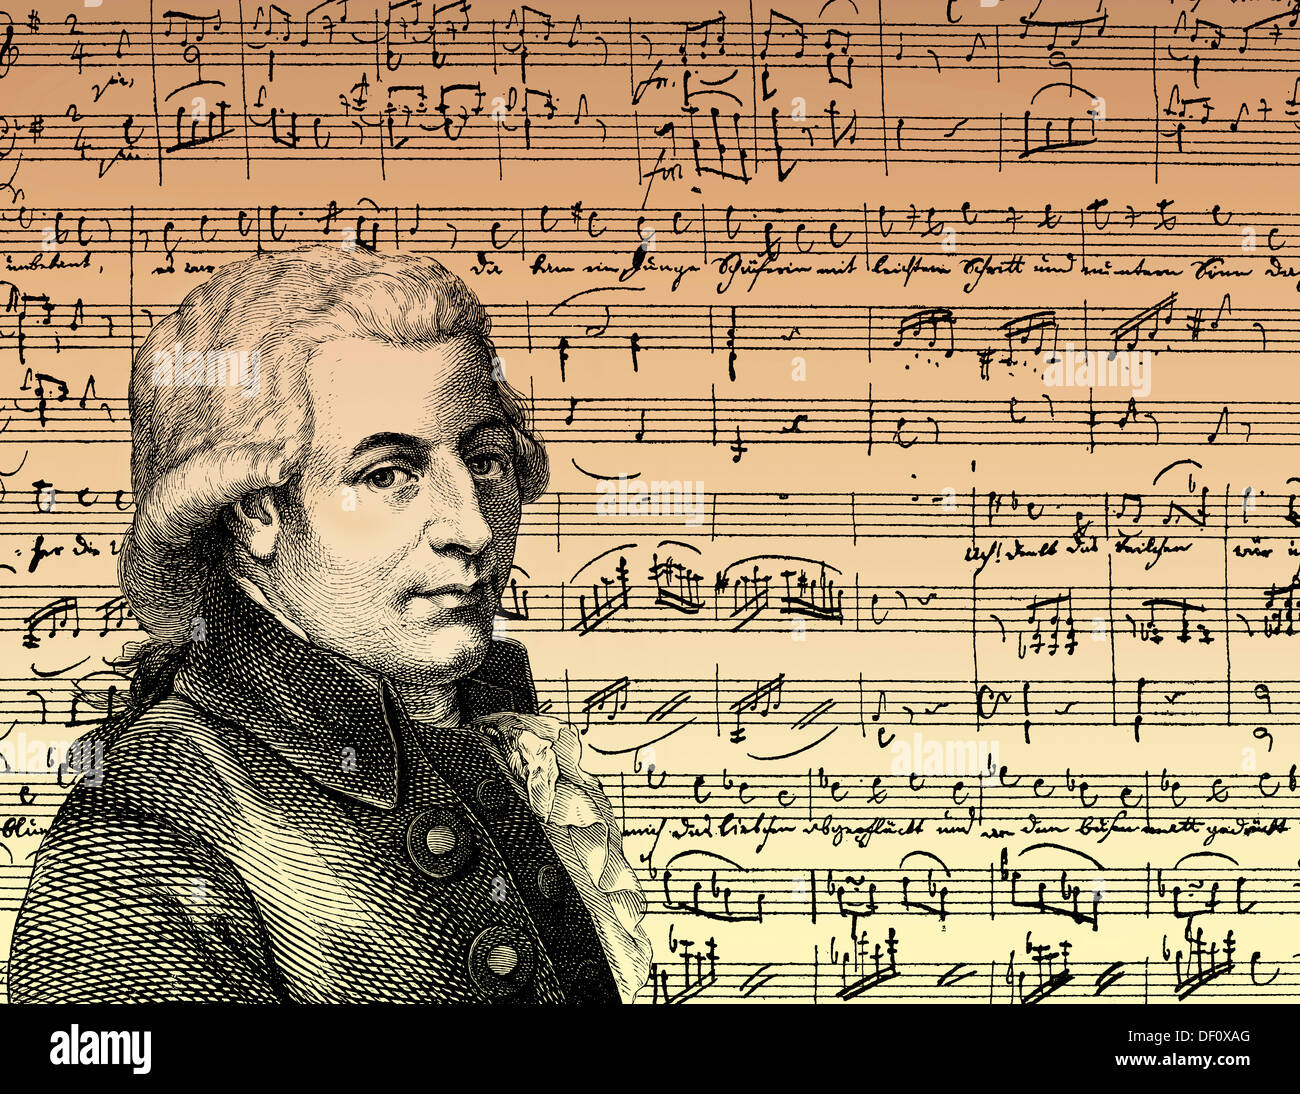 Wolfgang Amadeus Mozart, 1756 - 1791, a composer of the First Viennese School - Stock Image